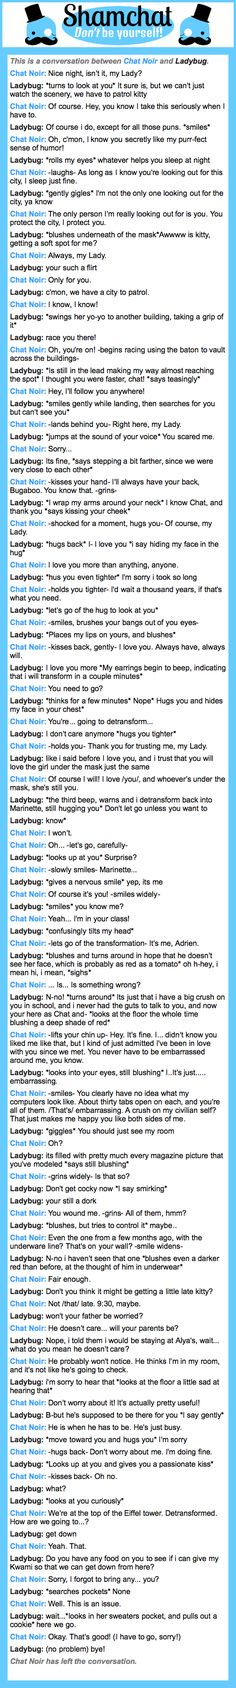 A conversation between Ladybug and Chat Noir